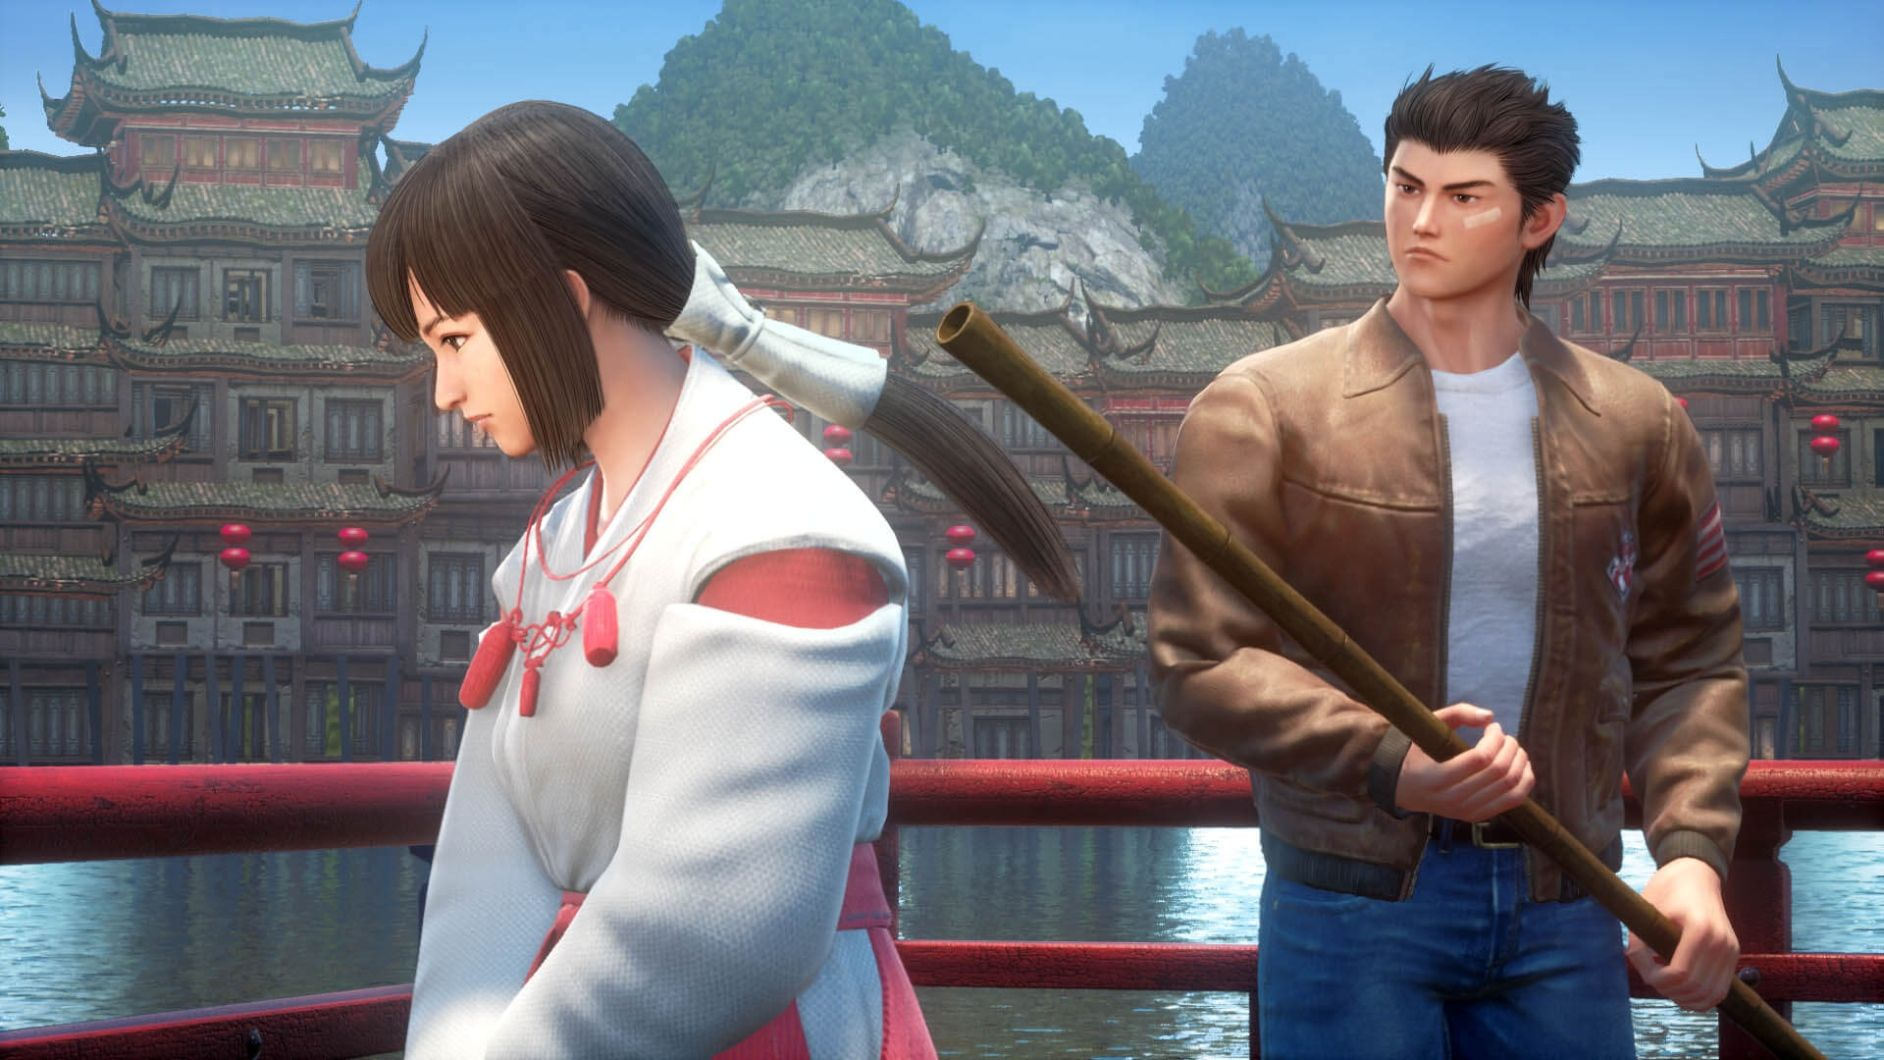 Fight i Shenmue 3